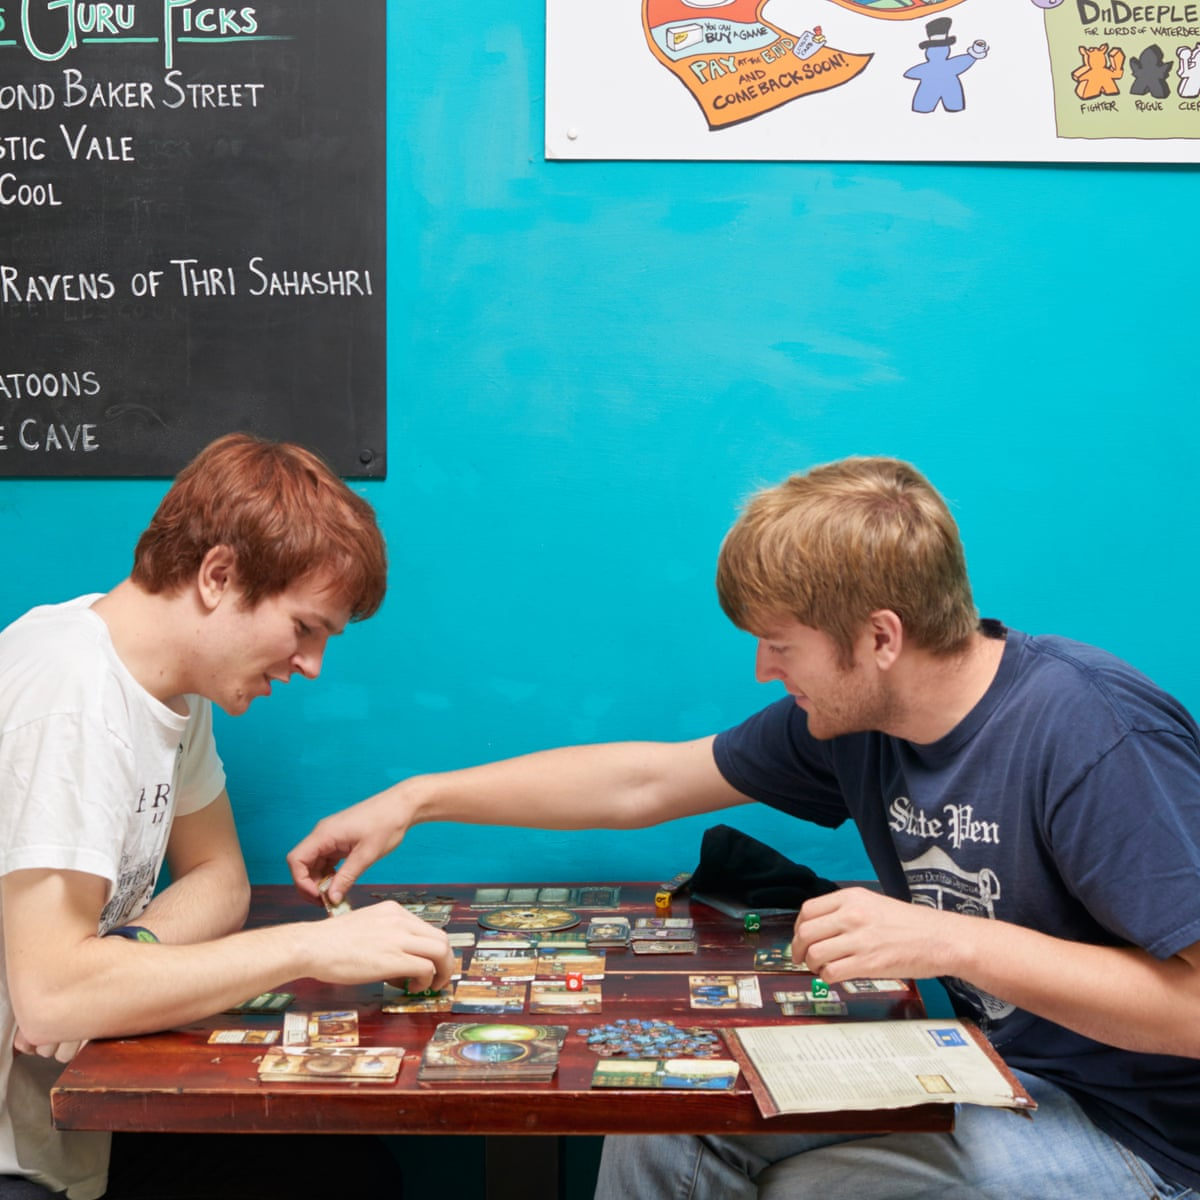 The rise and rise of tabletop gaming   Games   The Guardian